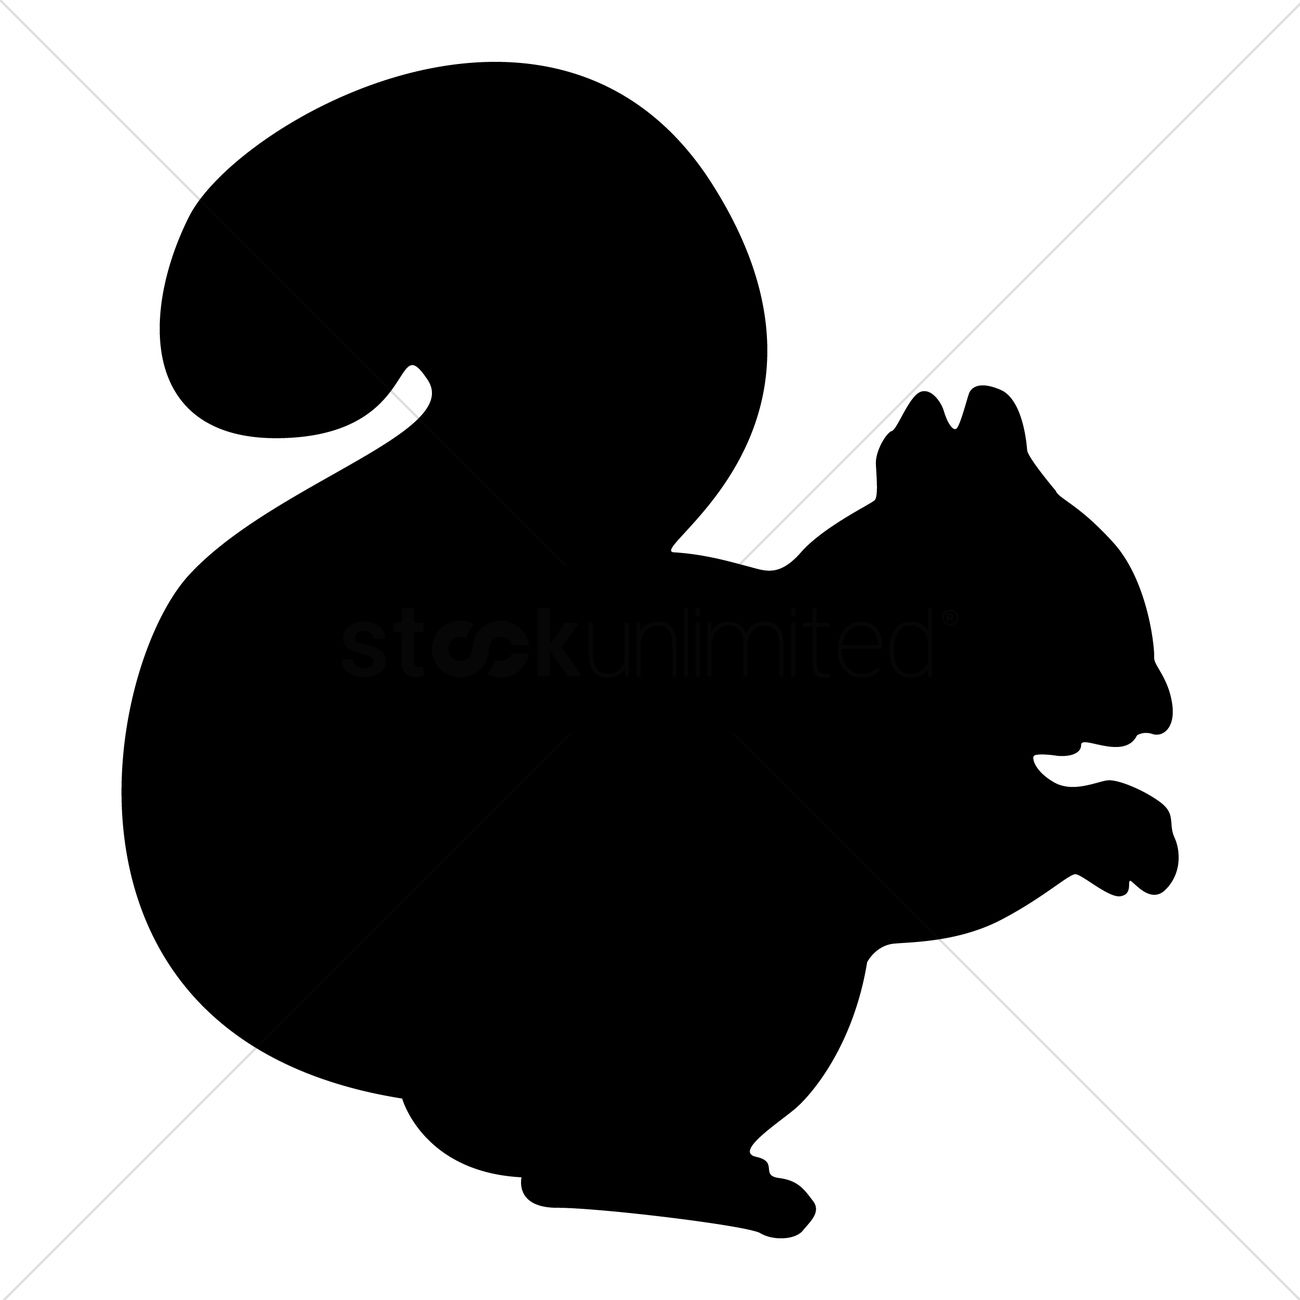 silhouette of squirrel vector image    stockunlimited - silhouette of squirrel vector graphic